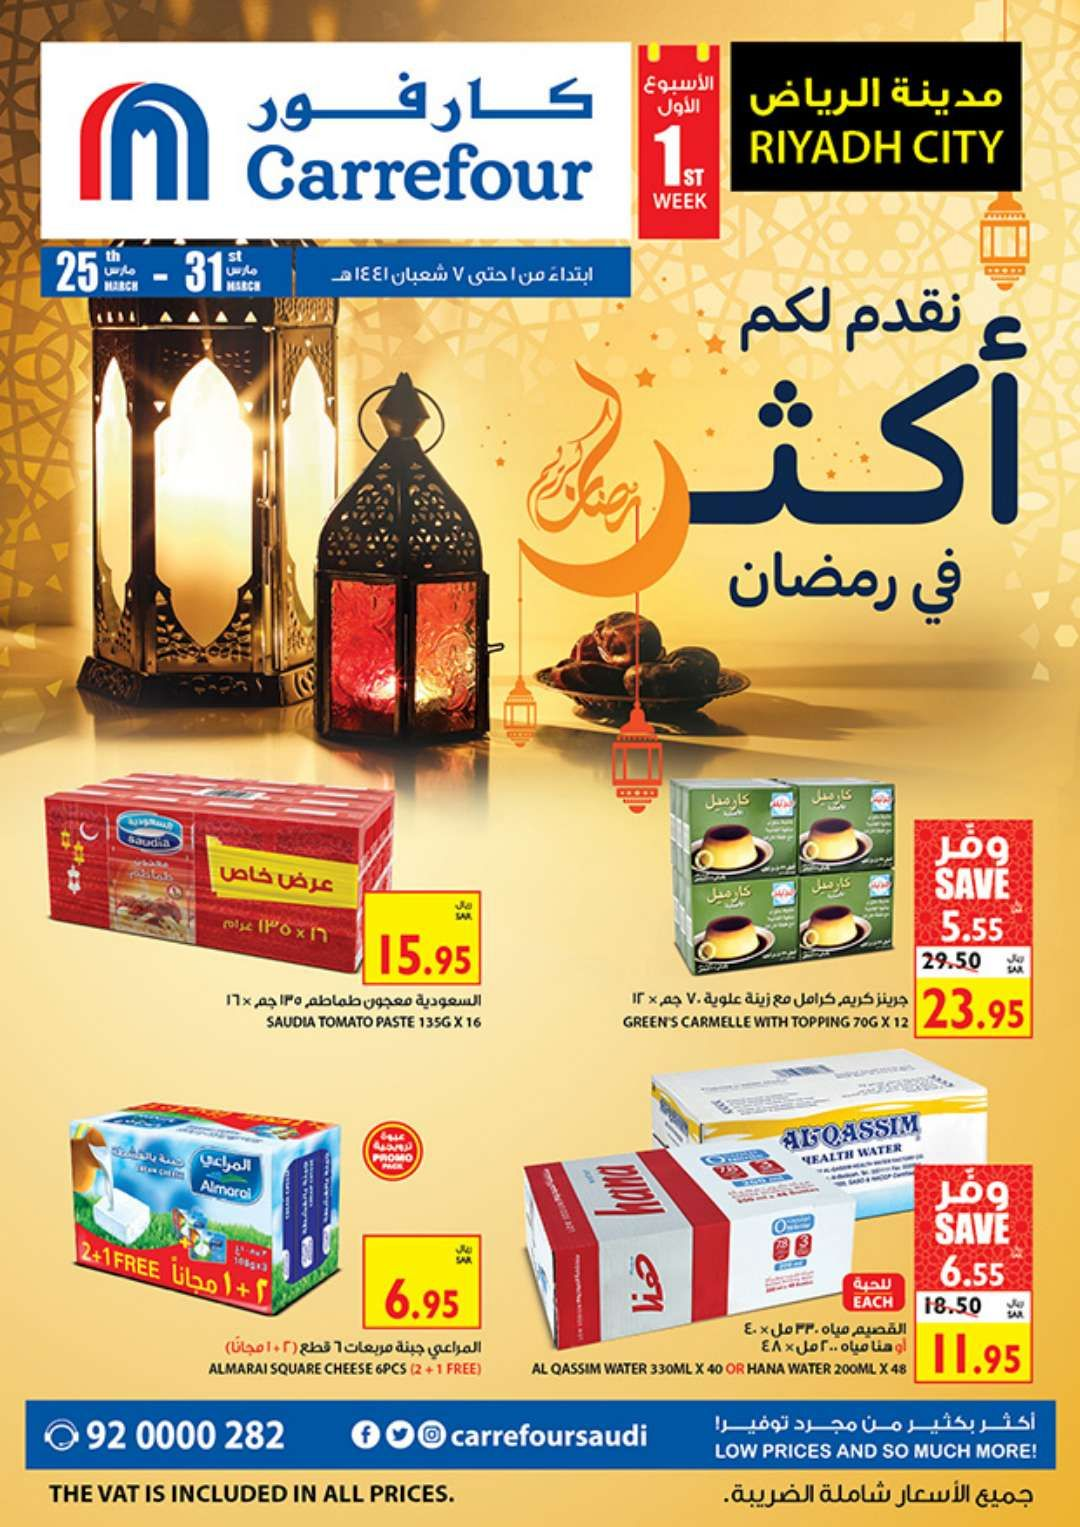 Pin By Soouq Sudia On عروض كارفور Carrefour Convenience Store Products Eastern Region